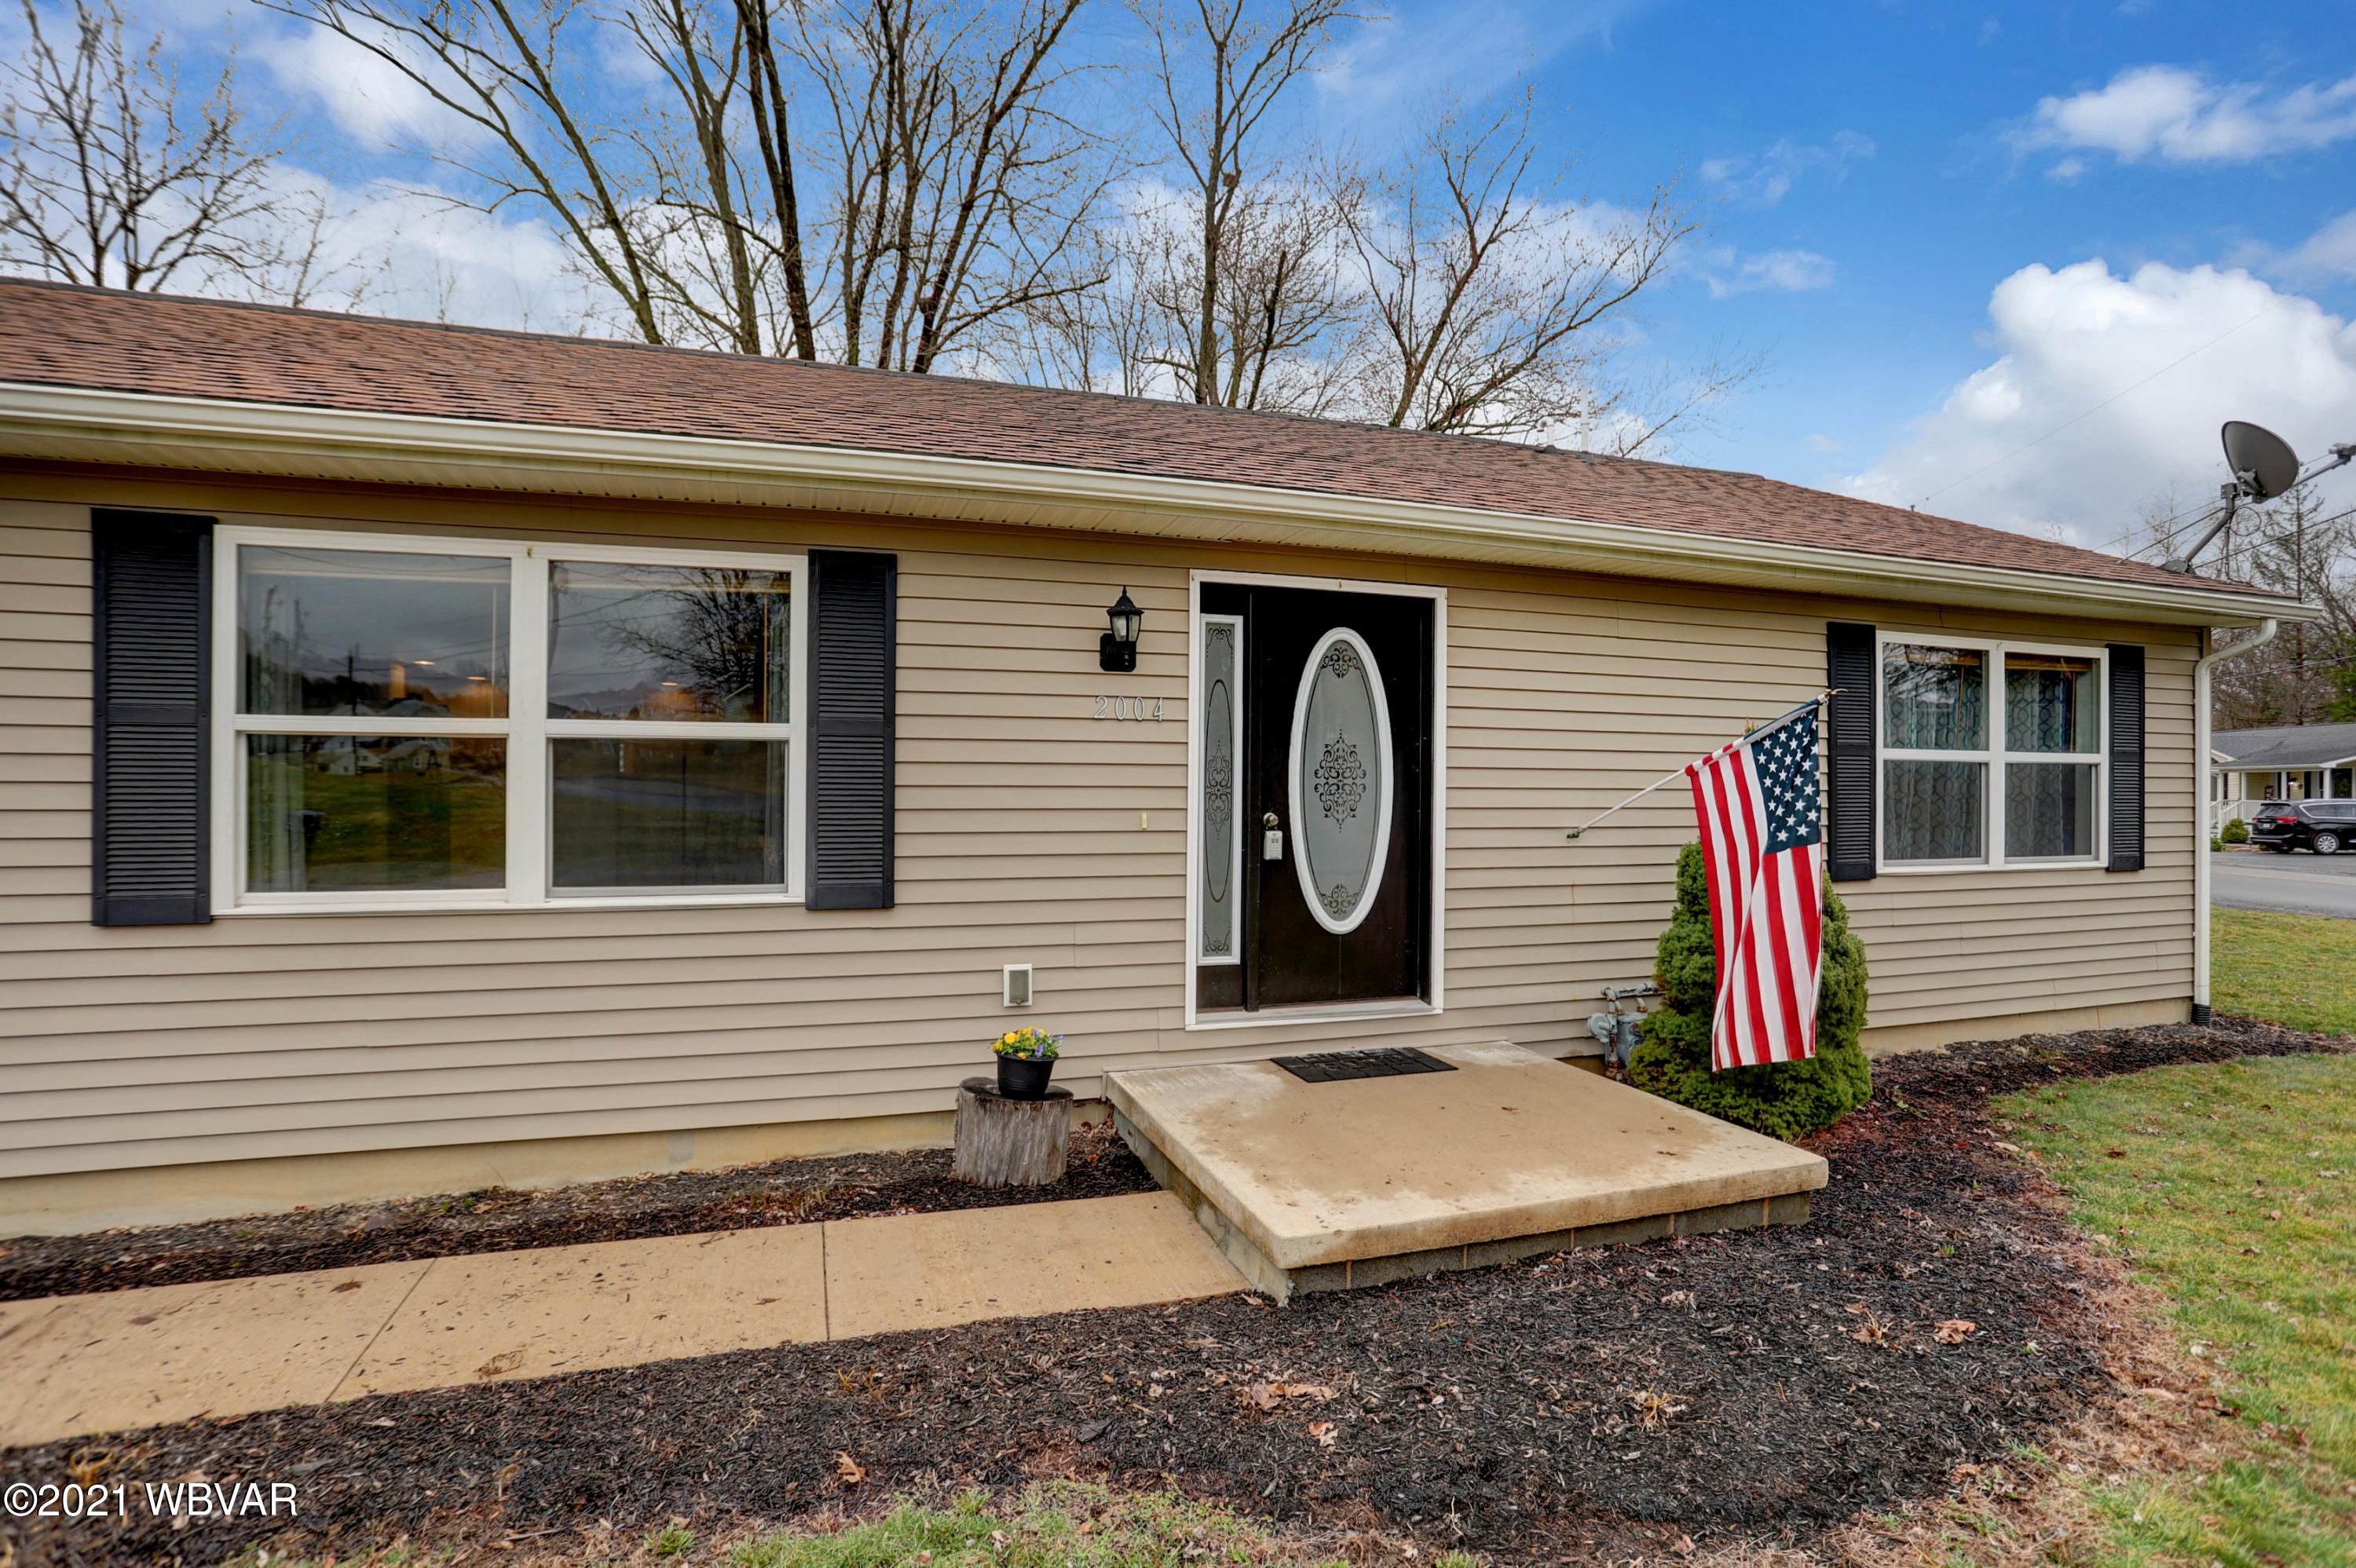 2004 YALE AVENUE, Williamsport, PA 17701, 3 Bedrooms Bedrooms, ,2 BathroomsBathrooms,Residential,For sale,YALE,WB-92149